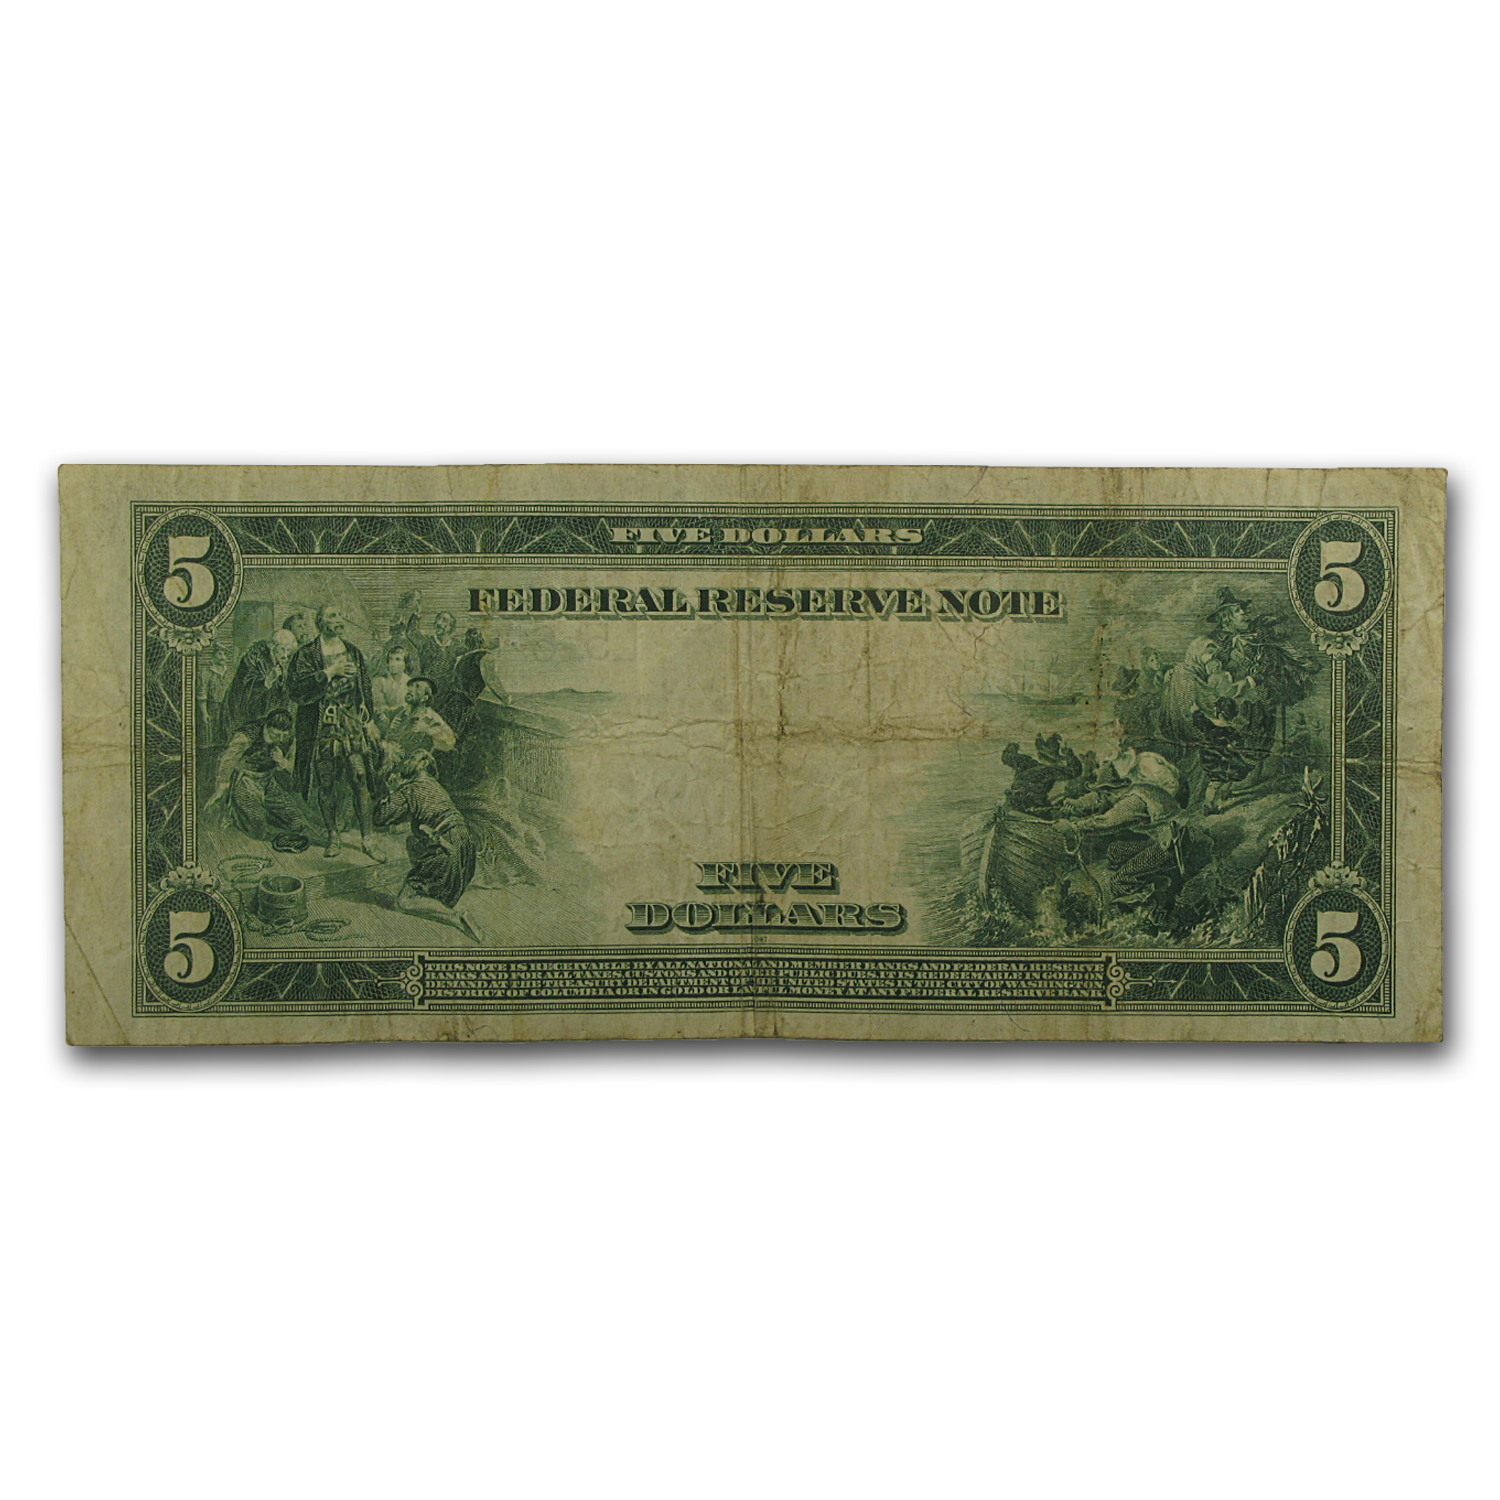 ... San Francisco) $5 FRN VF | Federal Reserve Notes (Large Size) | APMEX